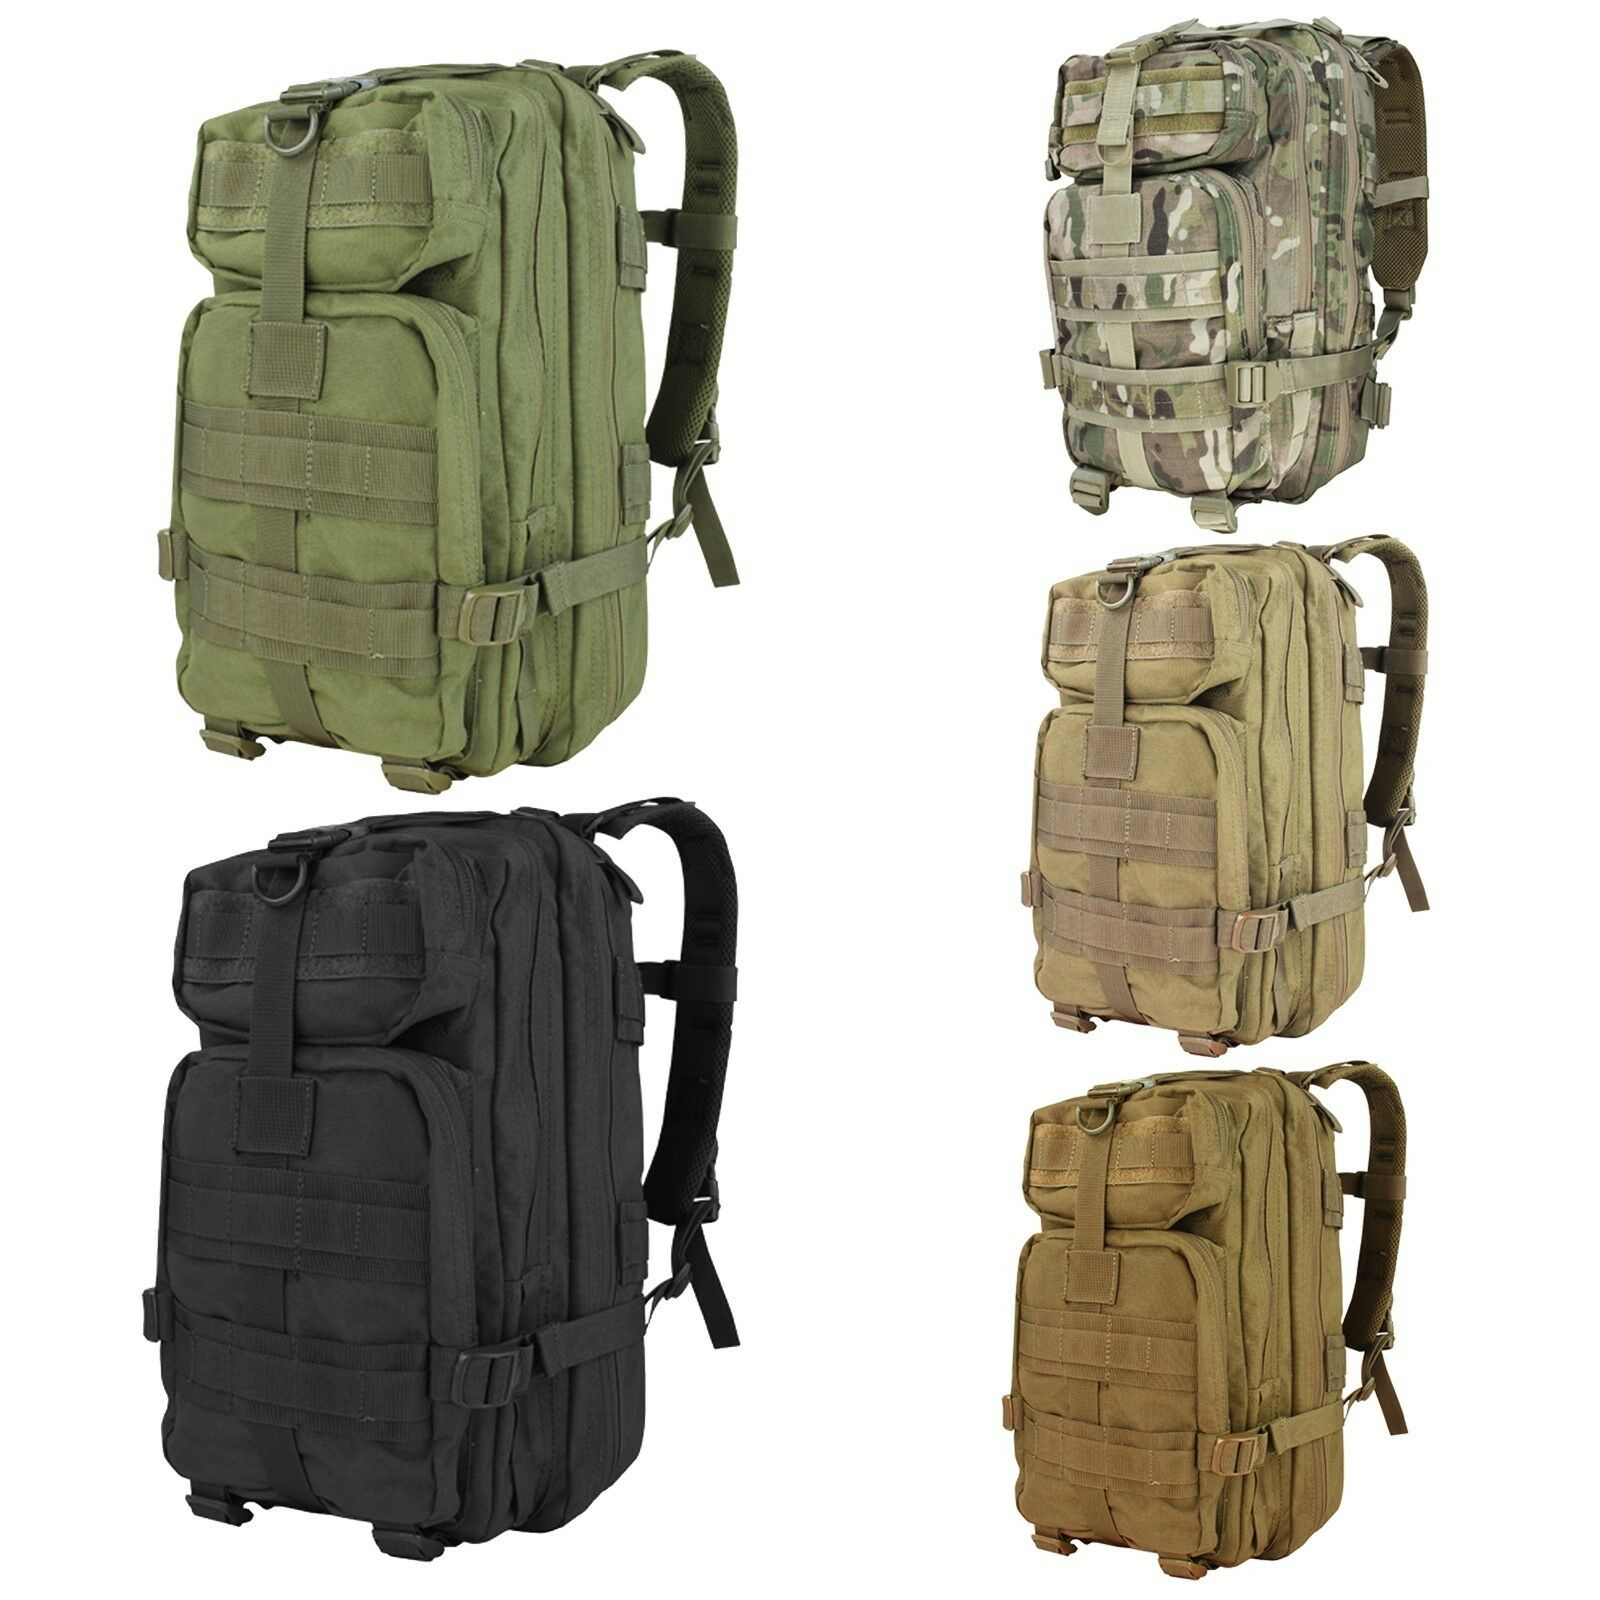 0d44bd44cbe2 Condor 126 Tactical MOLLE Compact Mission Assault Hiking Pack Camping  Backpack